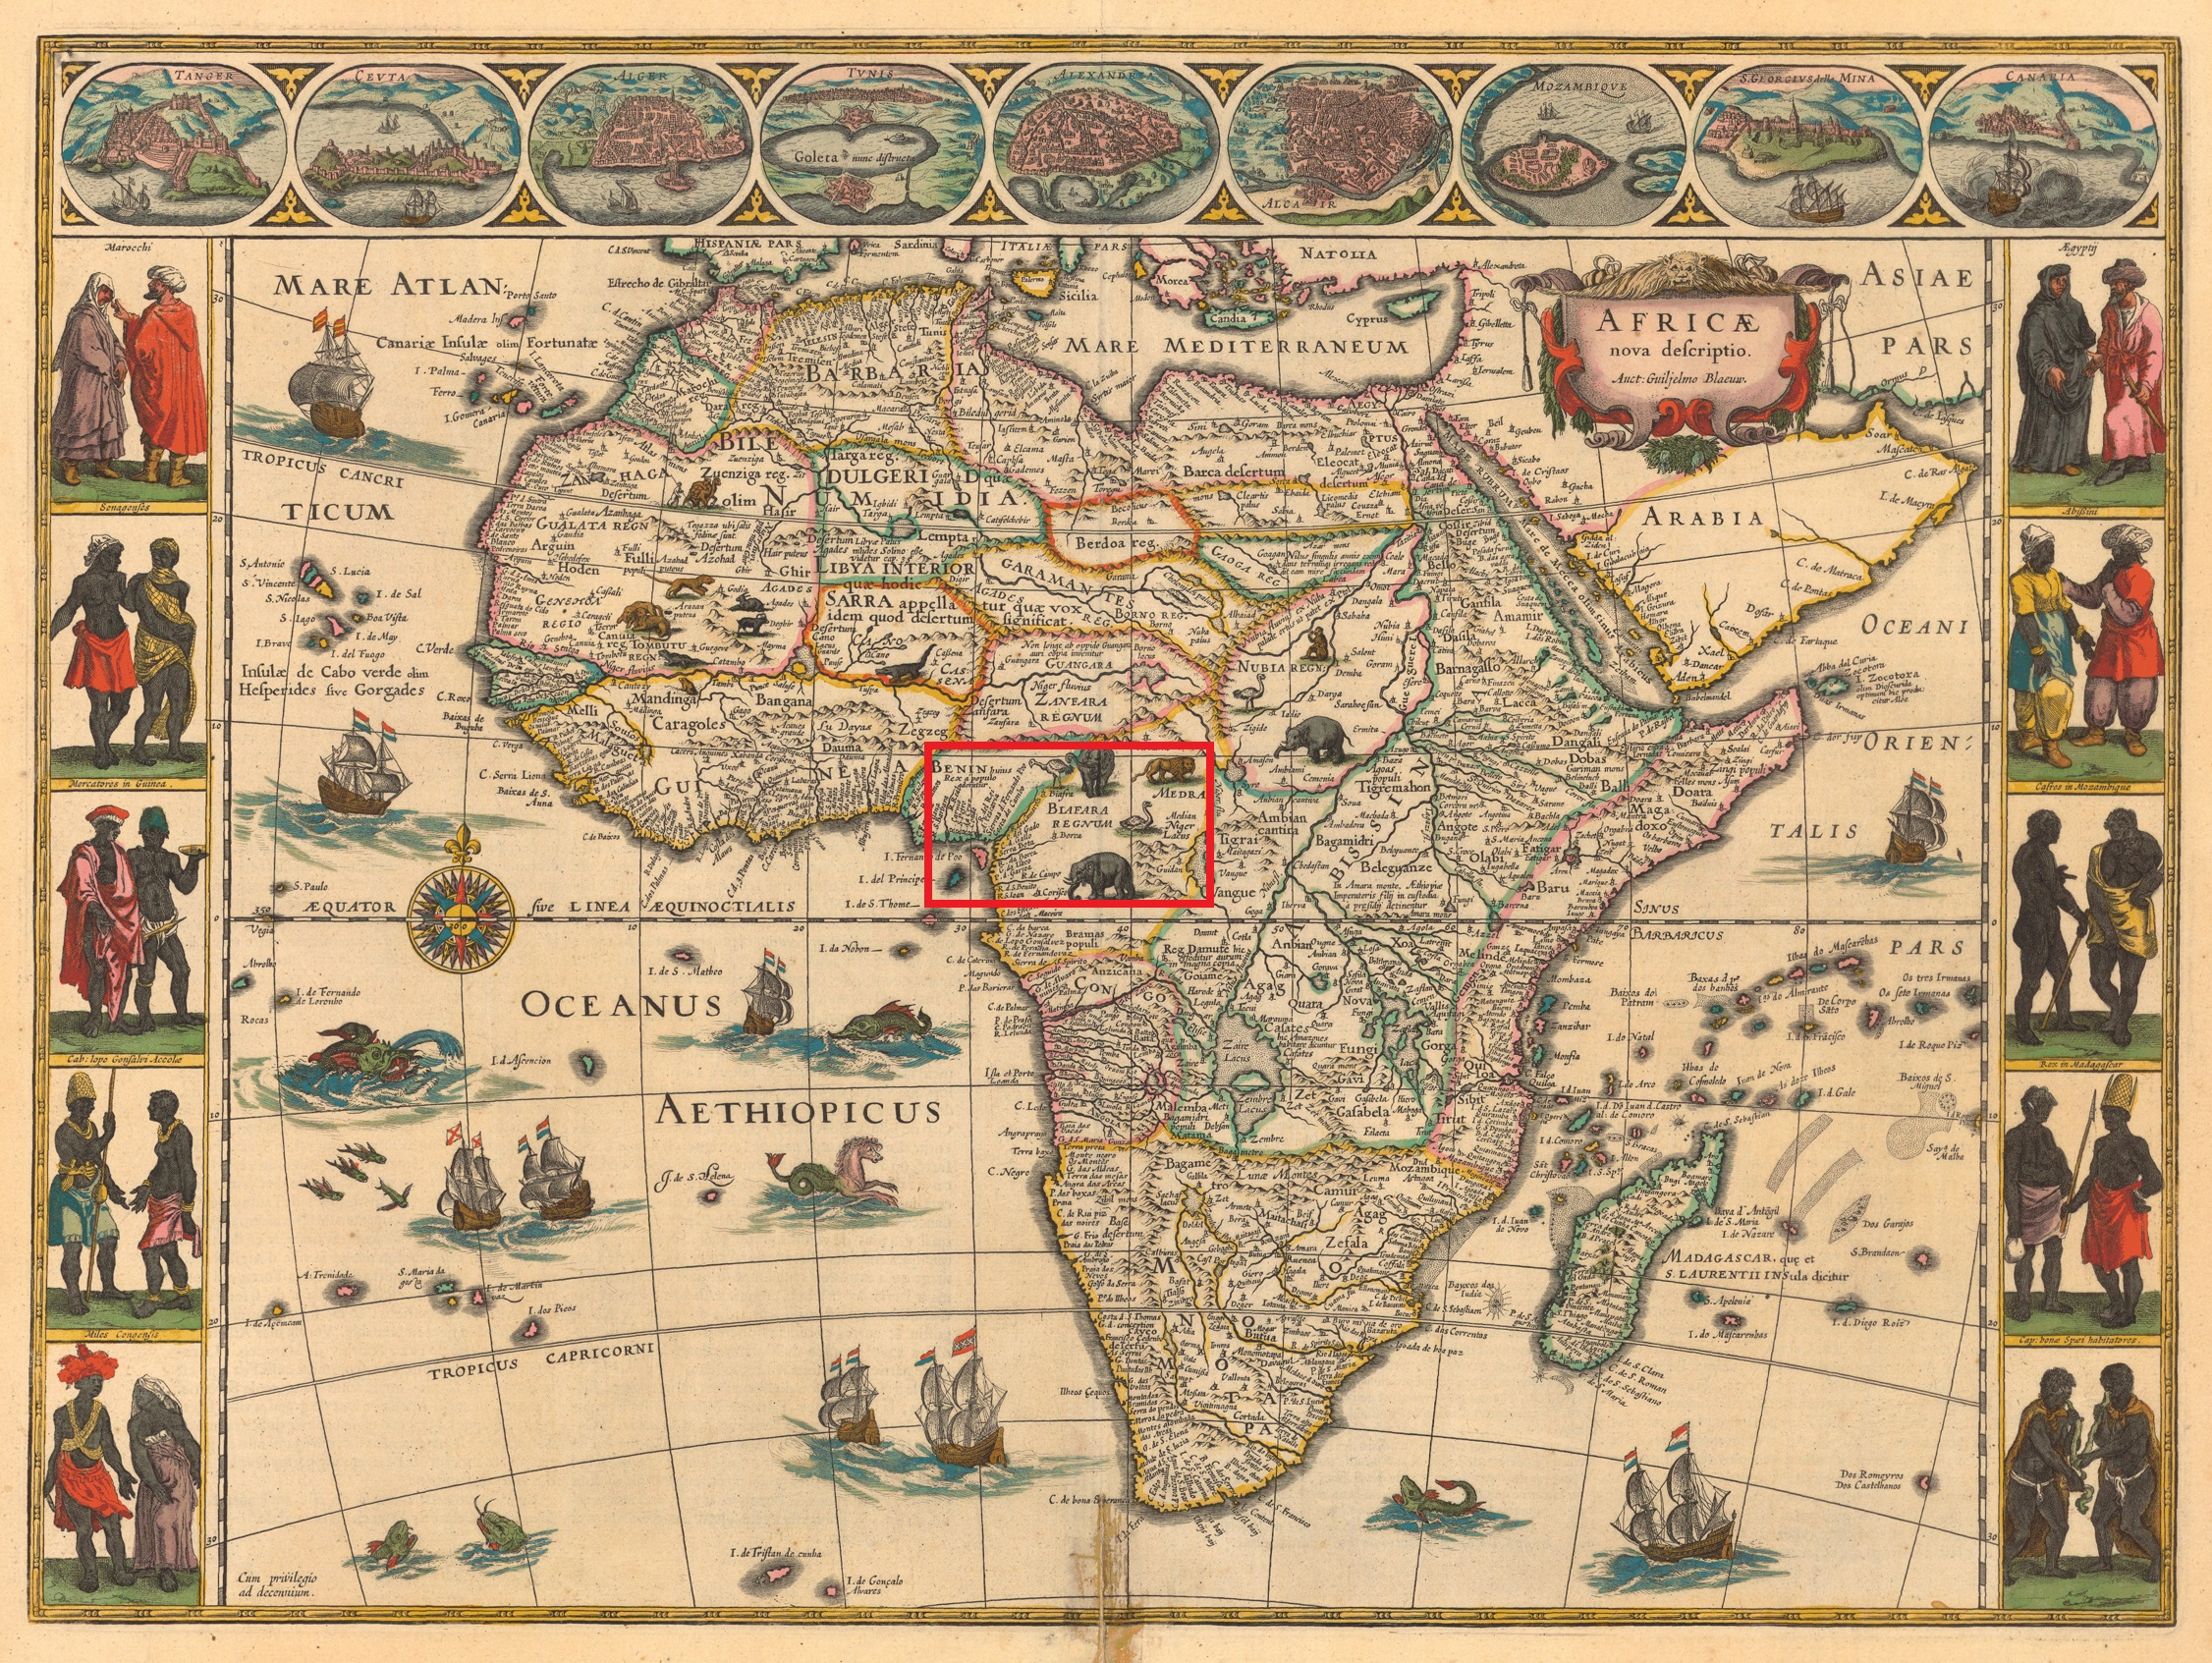 Figure 4: Africa Map published by Willem Blaeu(1644)